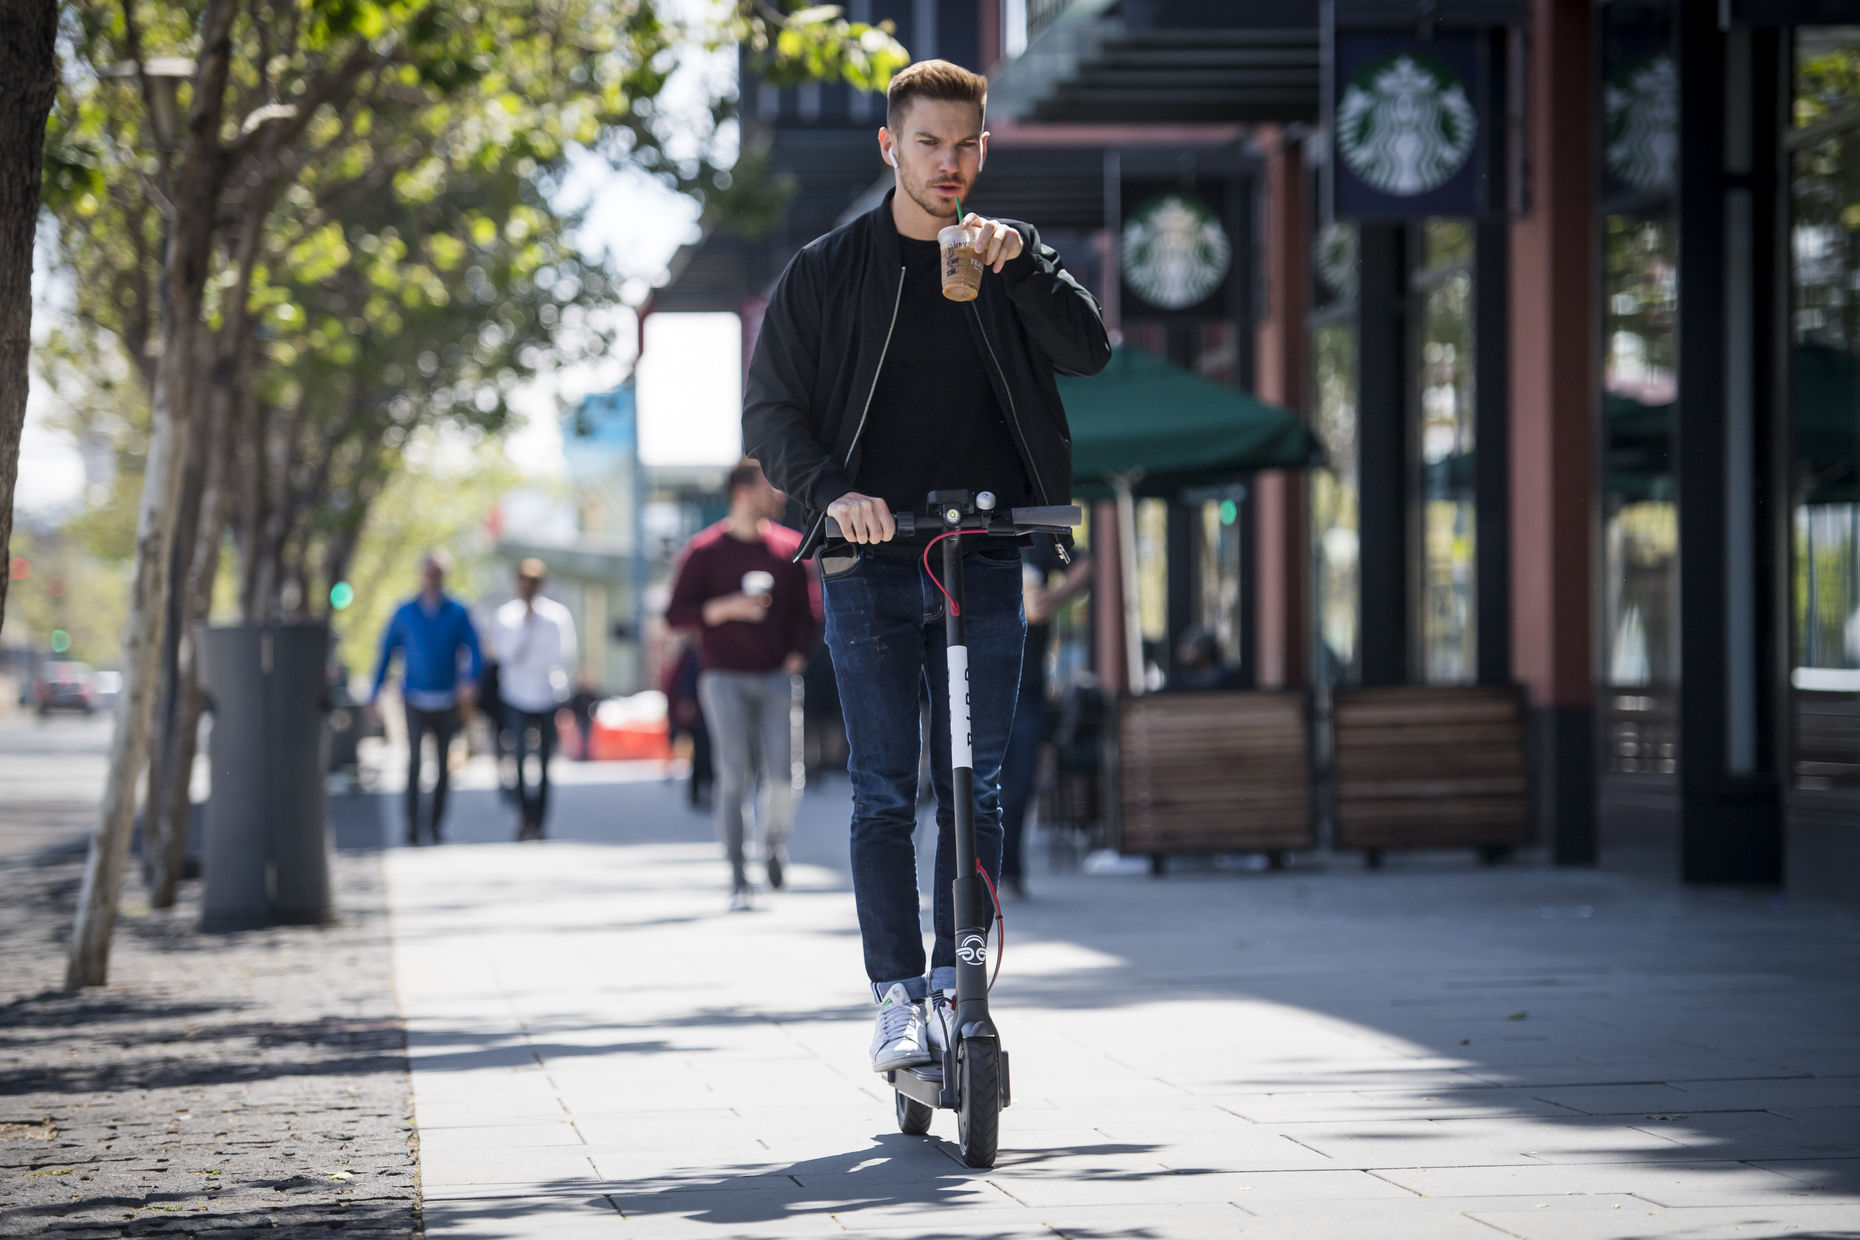 A Bird scooter being ridden in San Francisco last month. Photo: Bloomberg